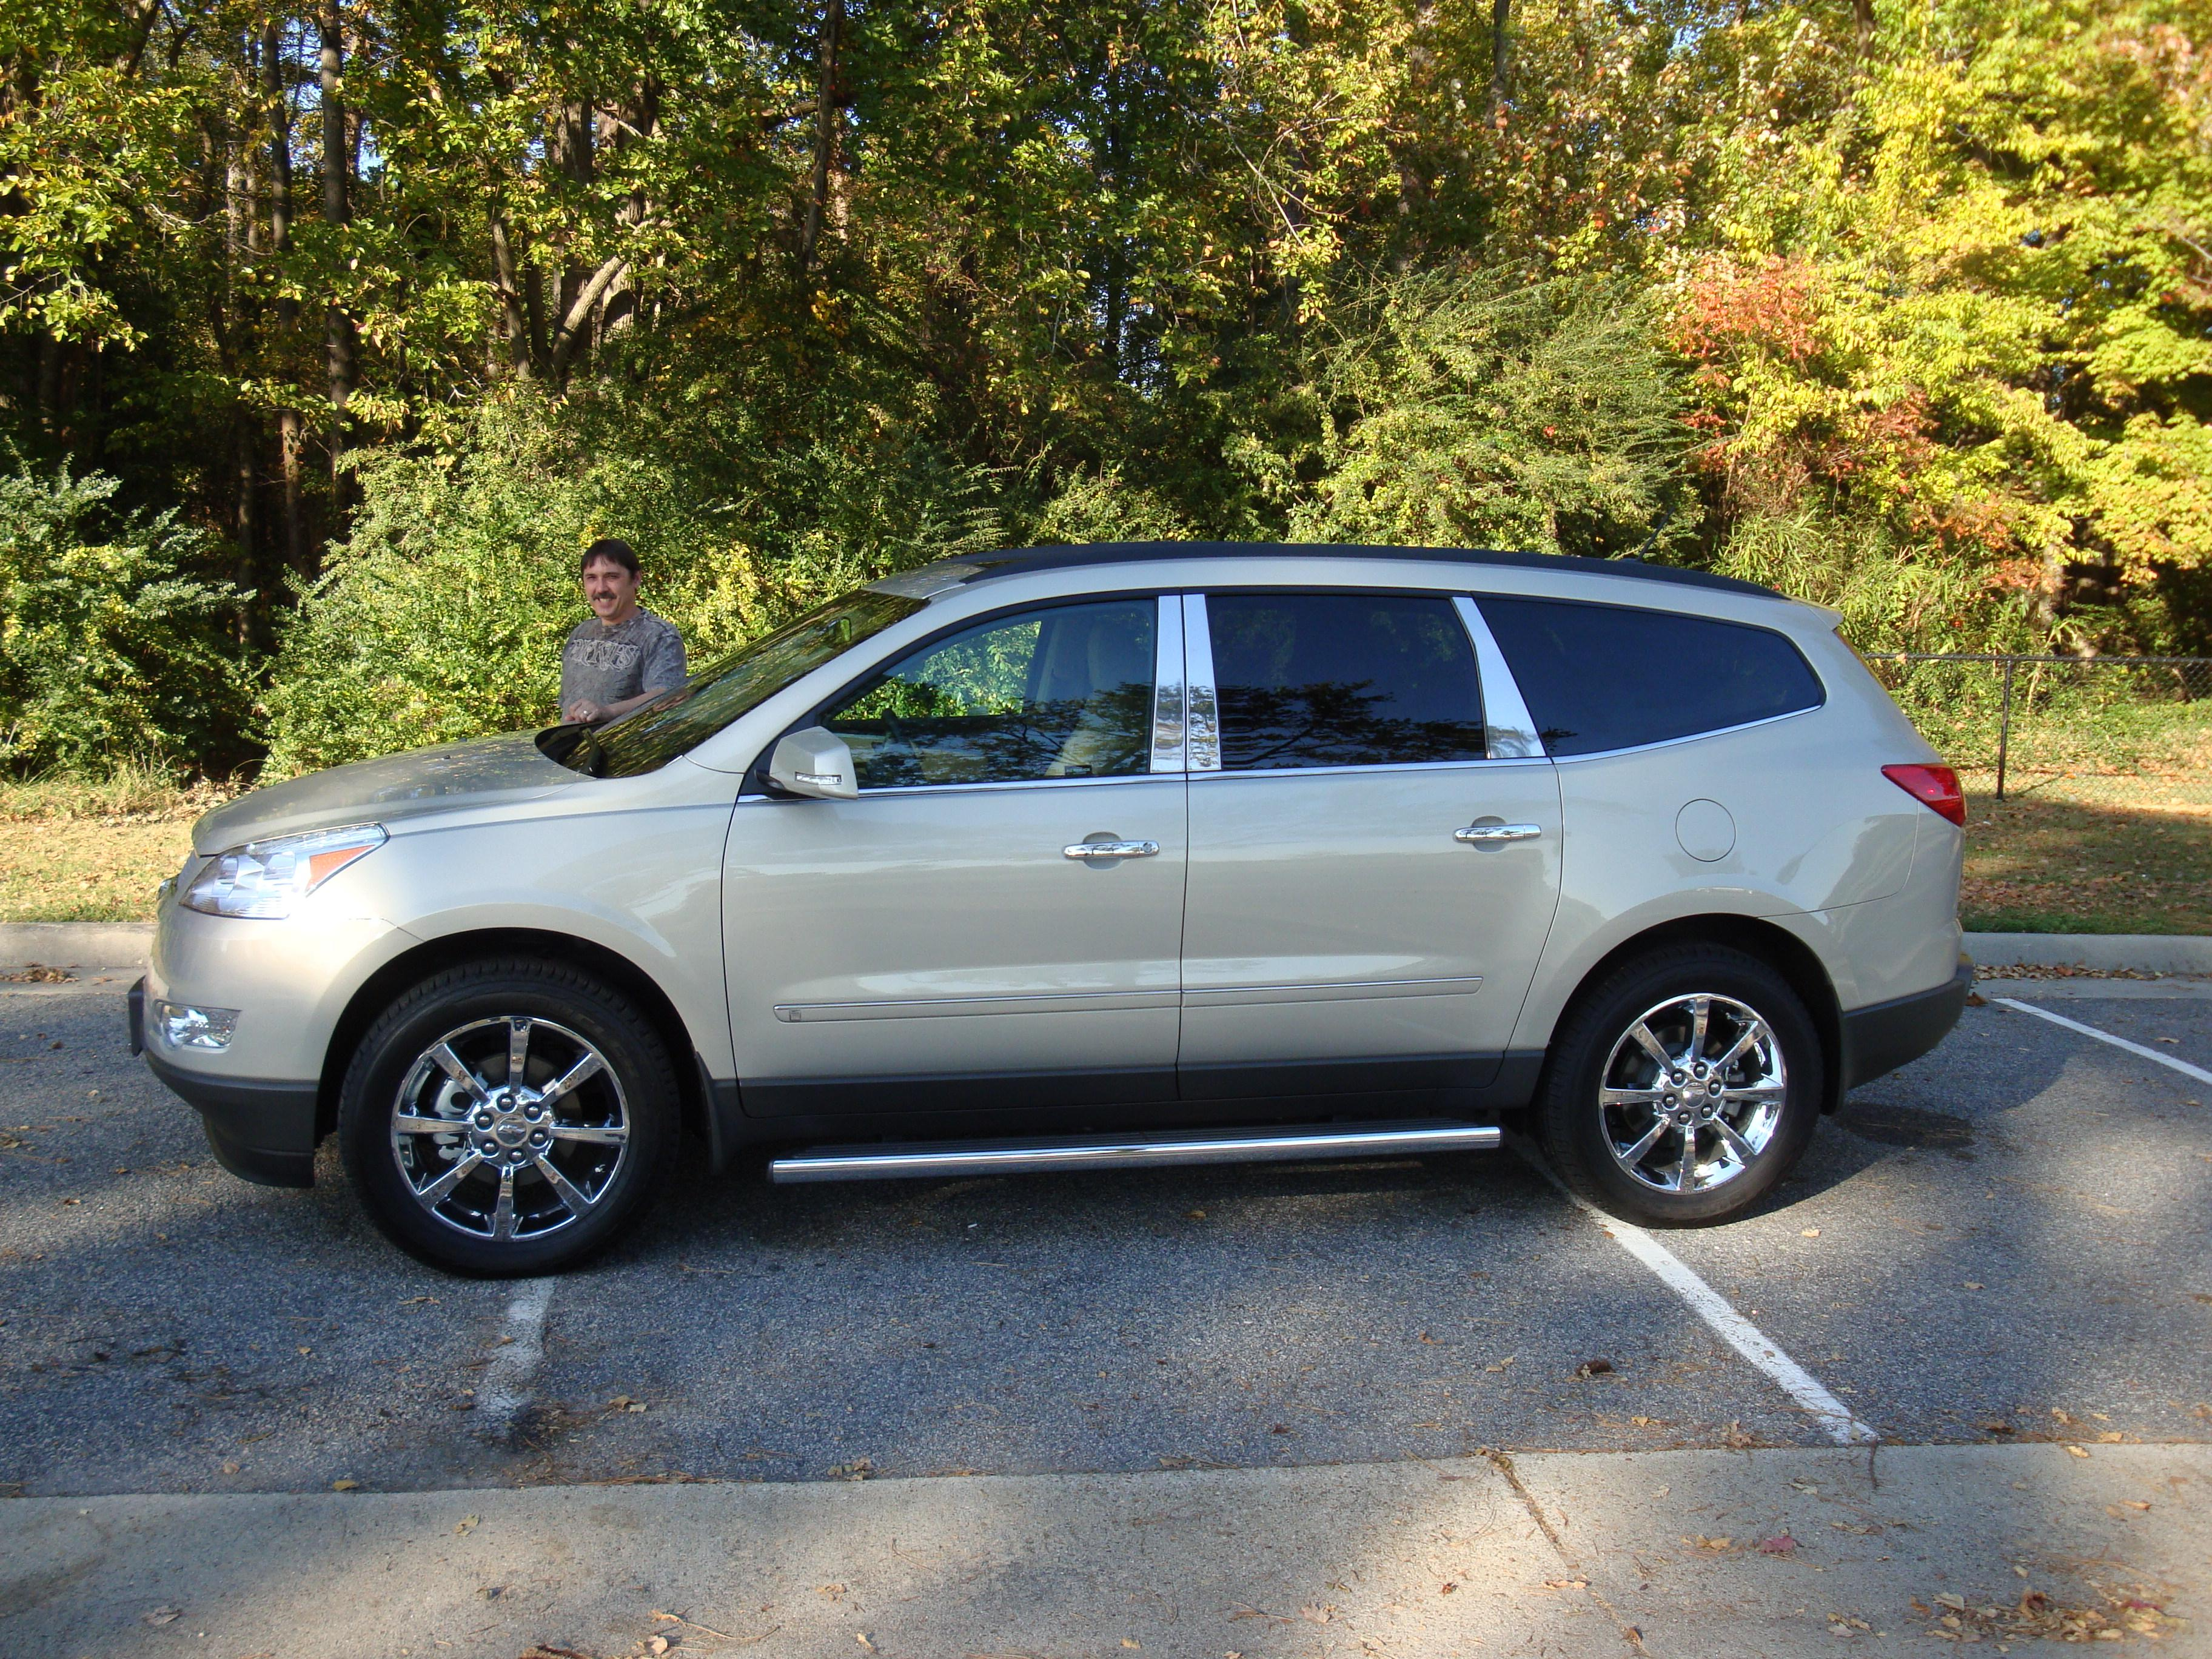 VB-02's 2010 Chevrolet Traverse